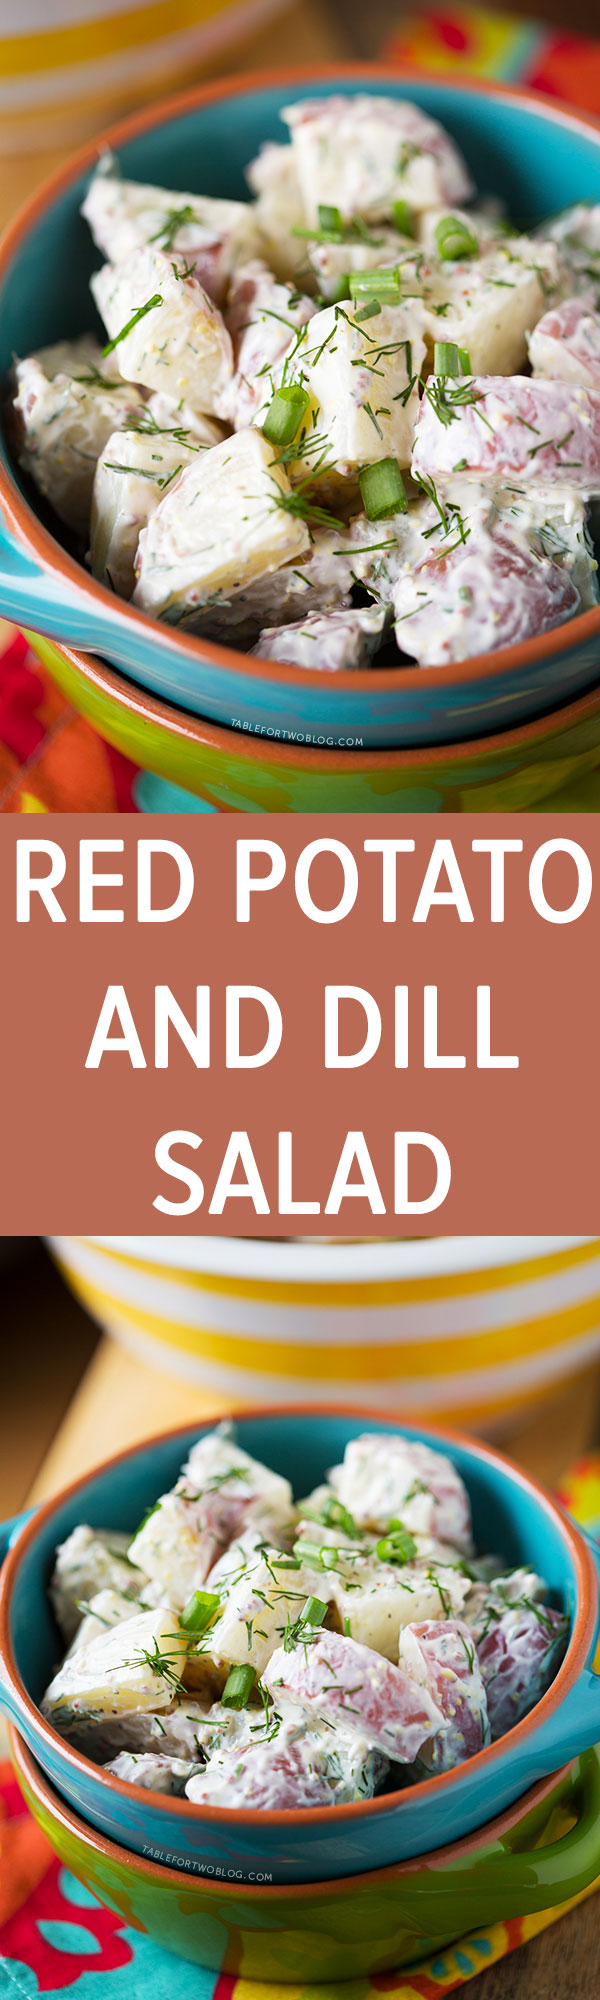 A super simple and healthy red potato and dill salad made with Greek yogurt. Prepare this guilt-free side dish for your next cookout!